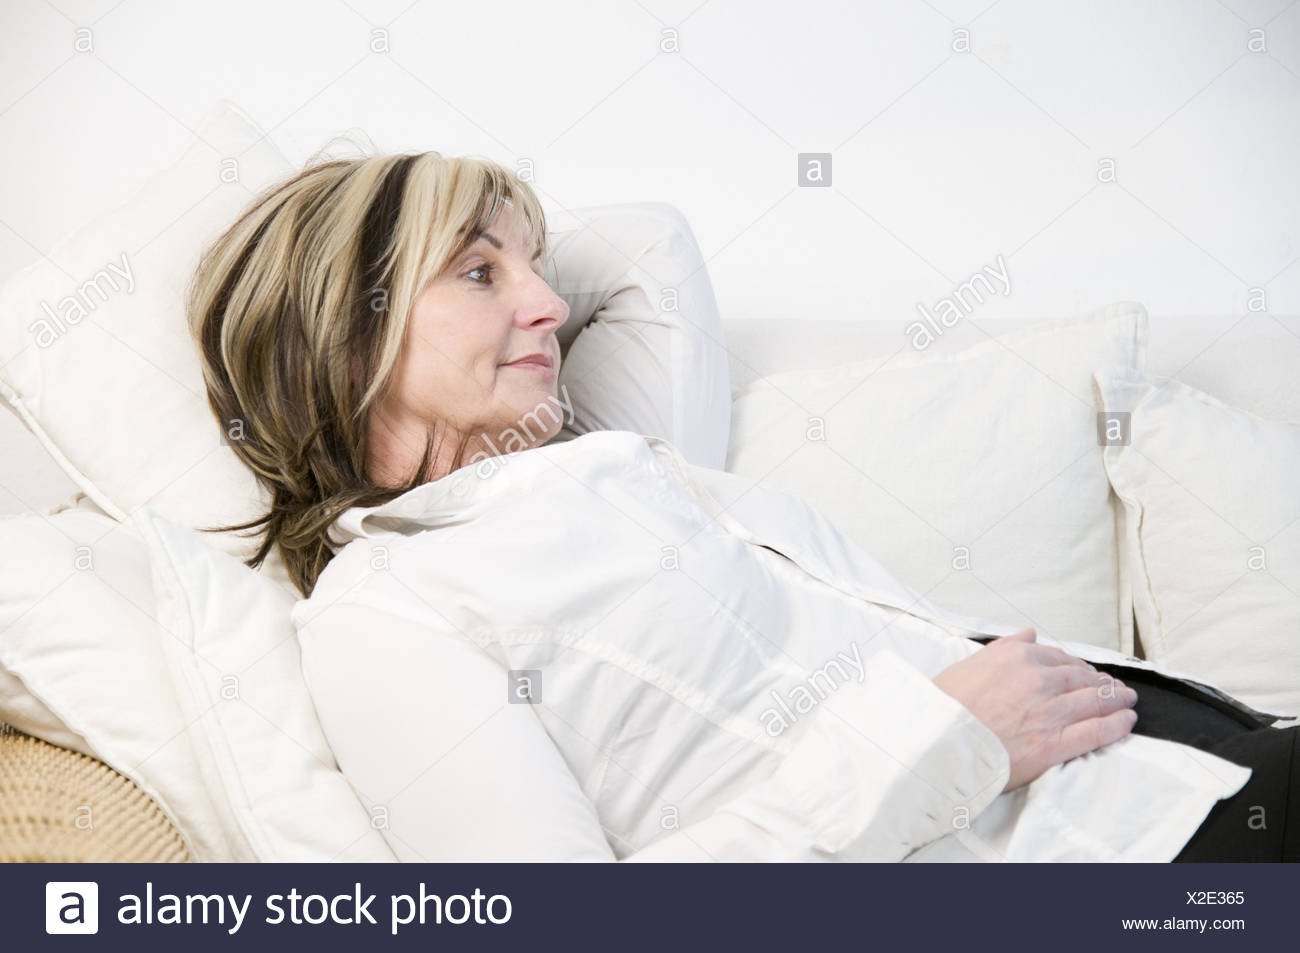 unwell on the sofa - Stock Image